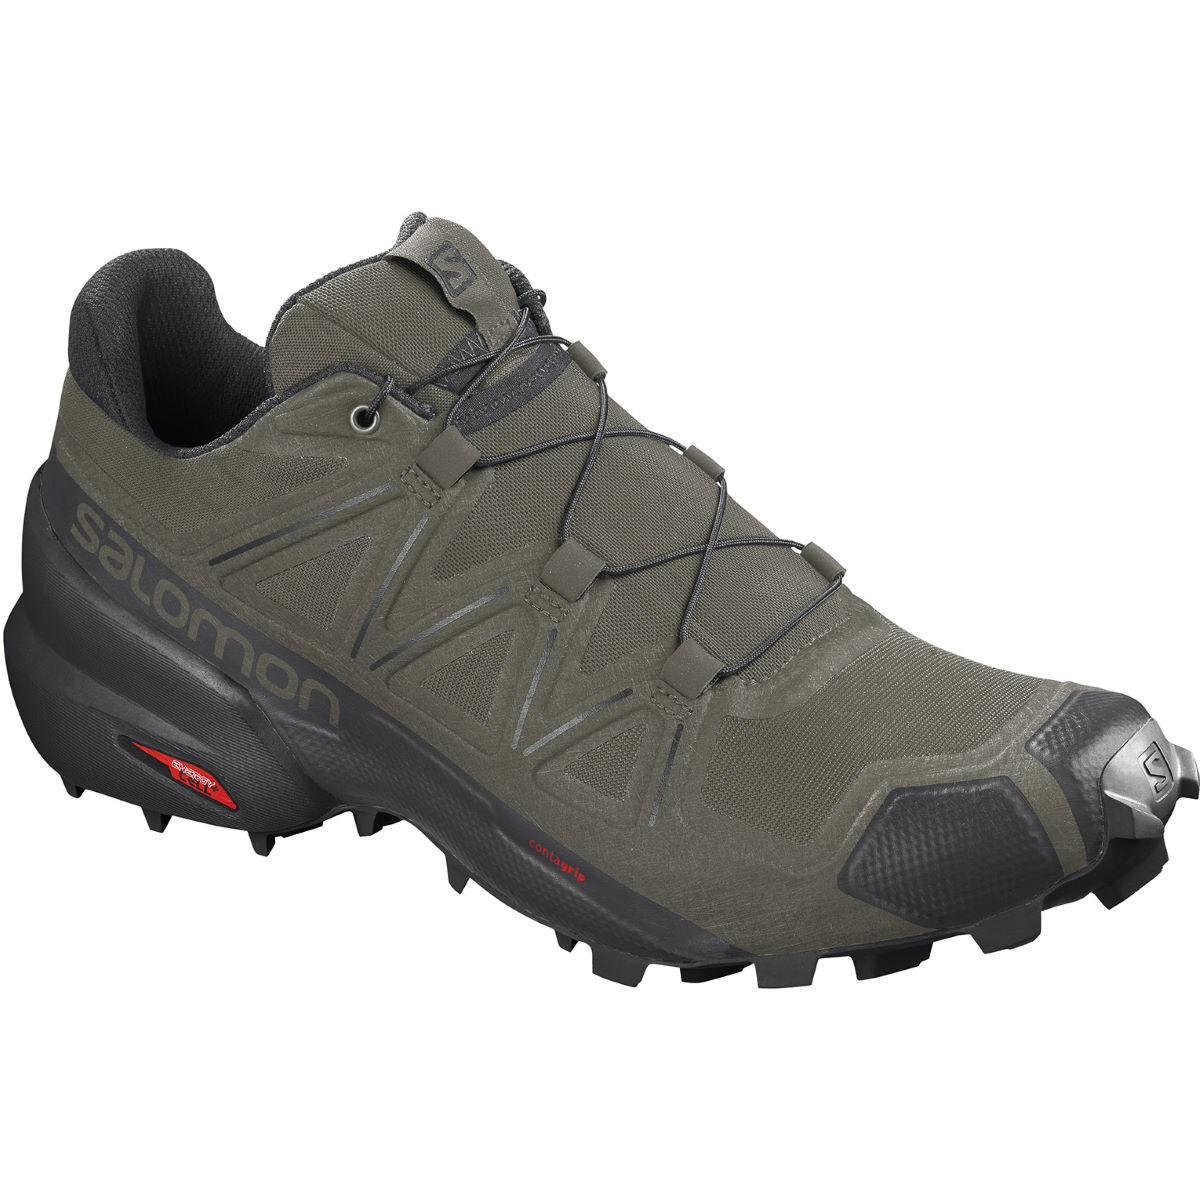 Salomon Speedcross 5 Shoes - UK 7 Grape Leaf/Black | Trail Shoes